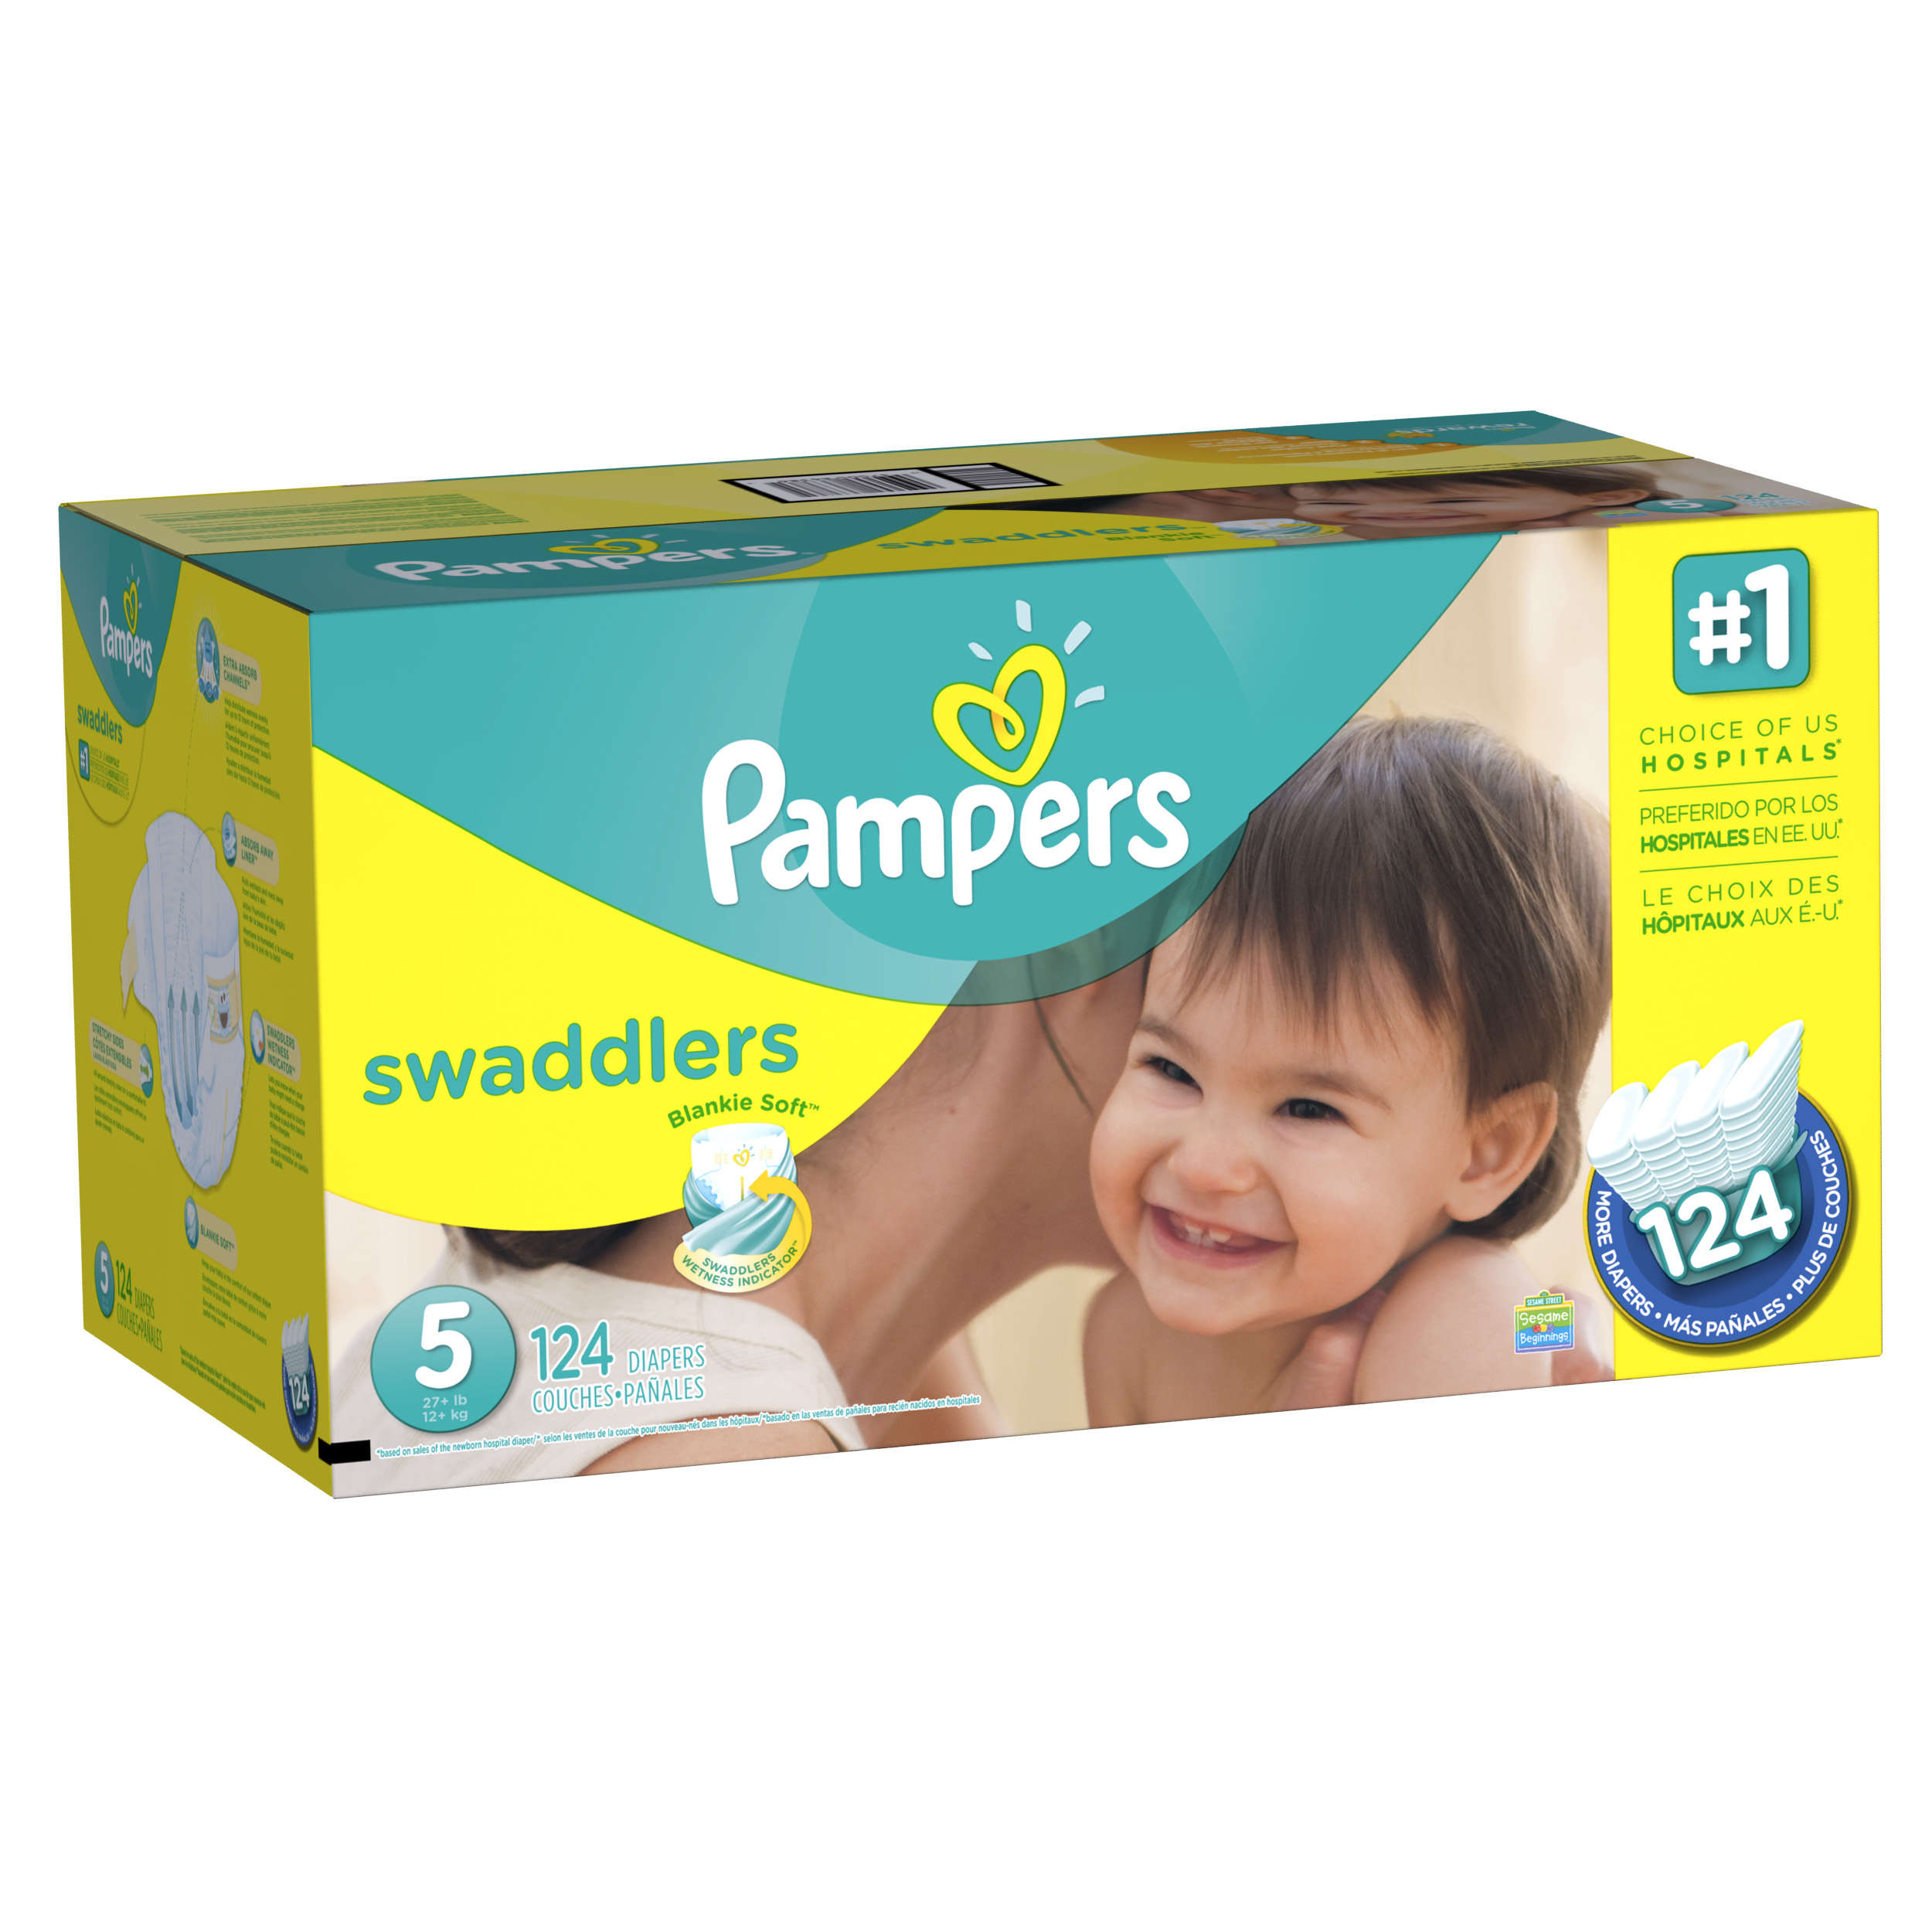 Pampers Swaddlers Diapers, Size 5, 104 Diapers